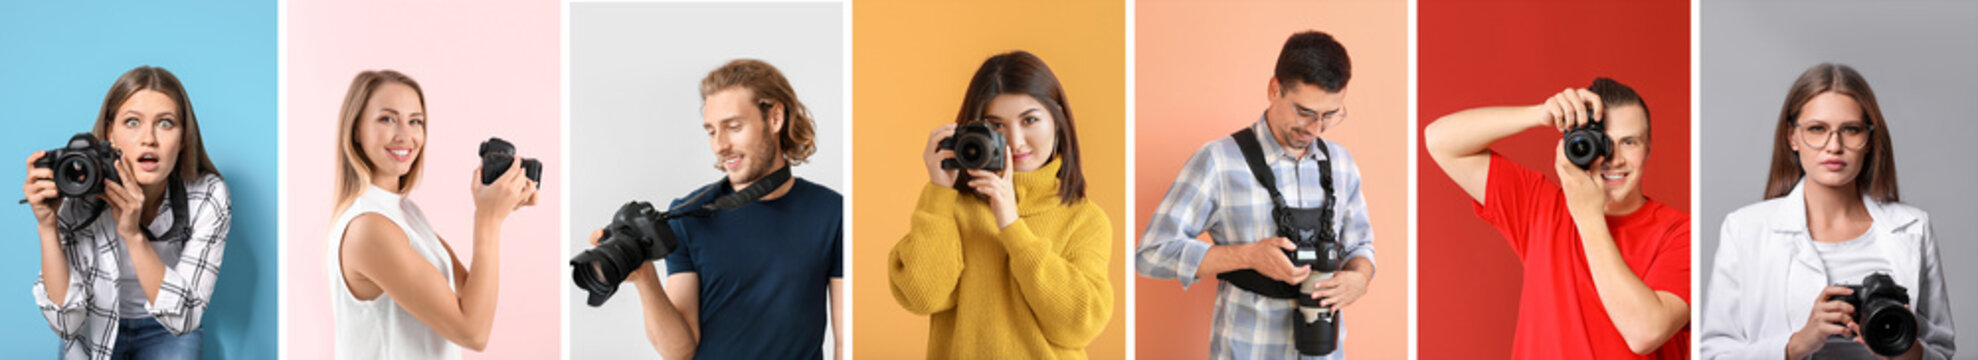 Collage of photos with different young photographers